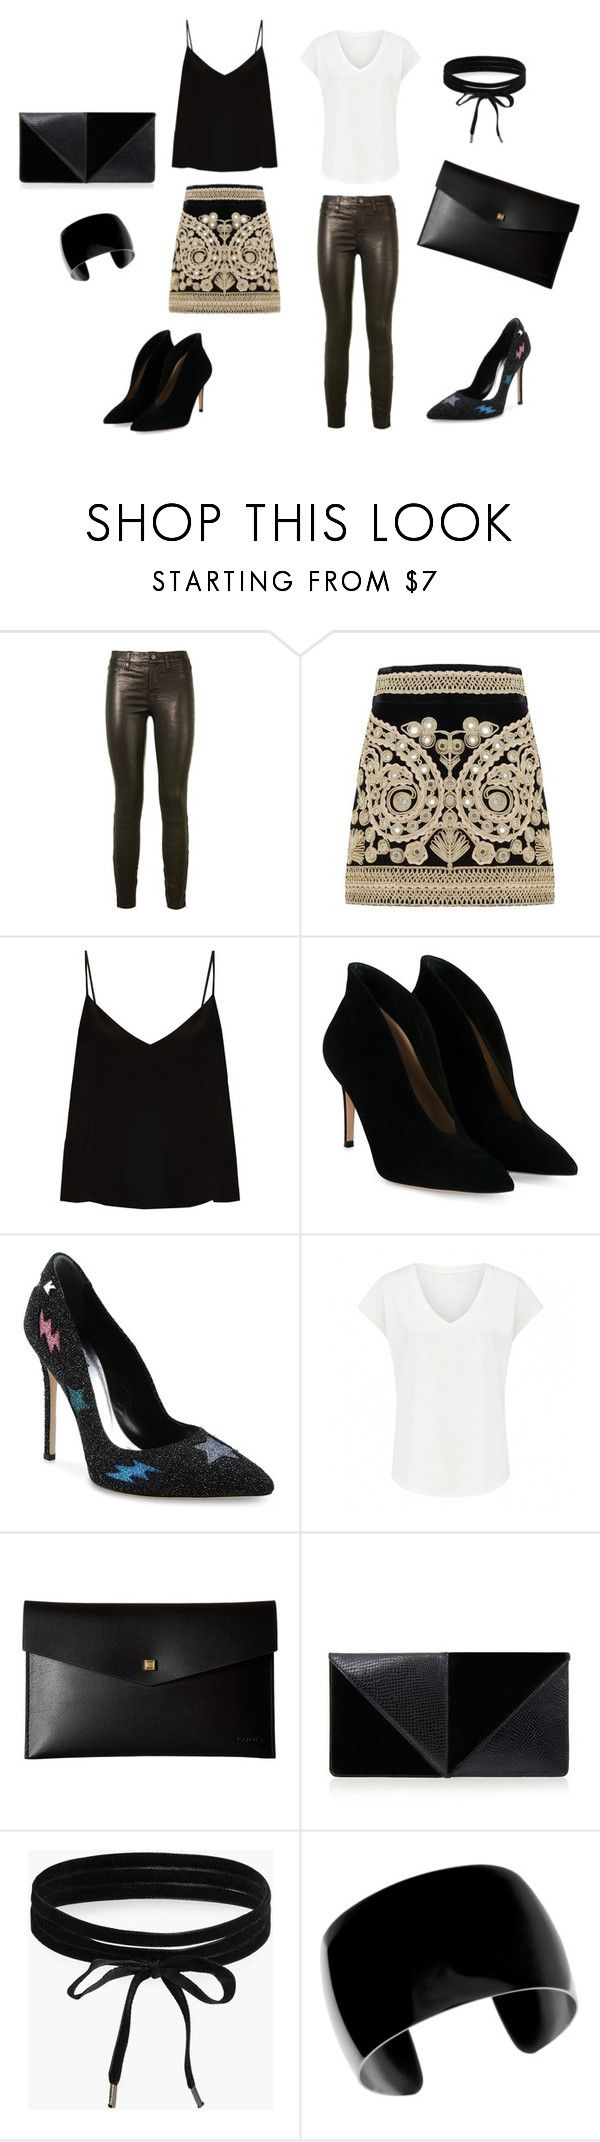 """""""Dramatica. Cena formal con los suegros (20)"""" by jesica-cropanese on Polyvore featuring moda, J Brand, For Love & Lemons, Raey, Gianvito Rossi, Karl Lagerfeld, Lodis, UN United Nude y Boohoo"""